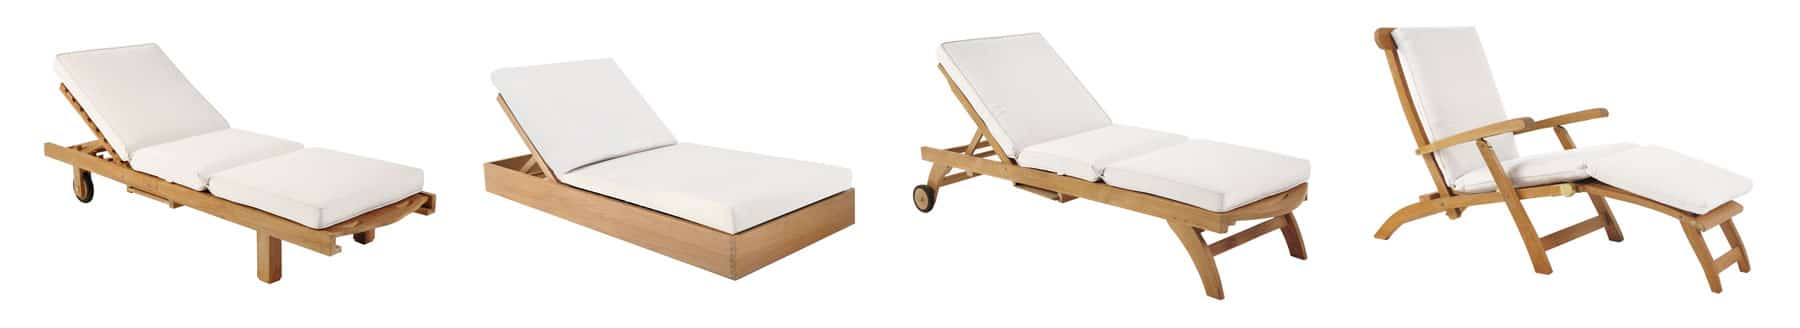 Teak Outdoor Sun Loungers With White Cushions